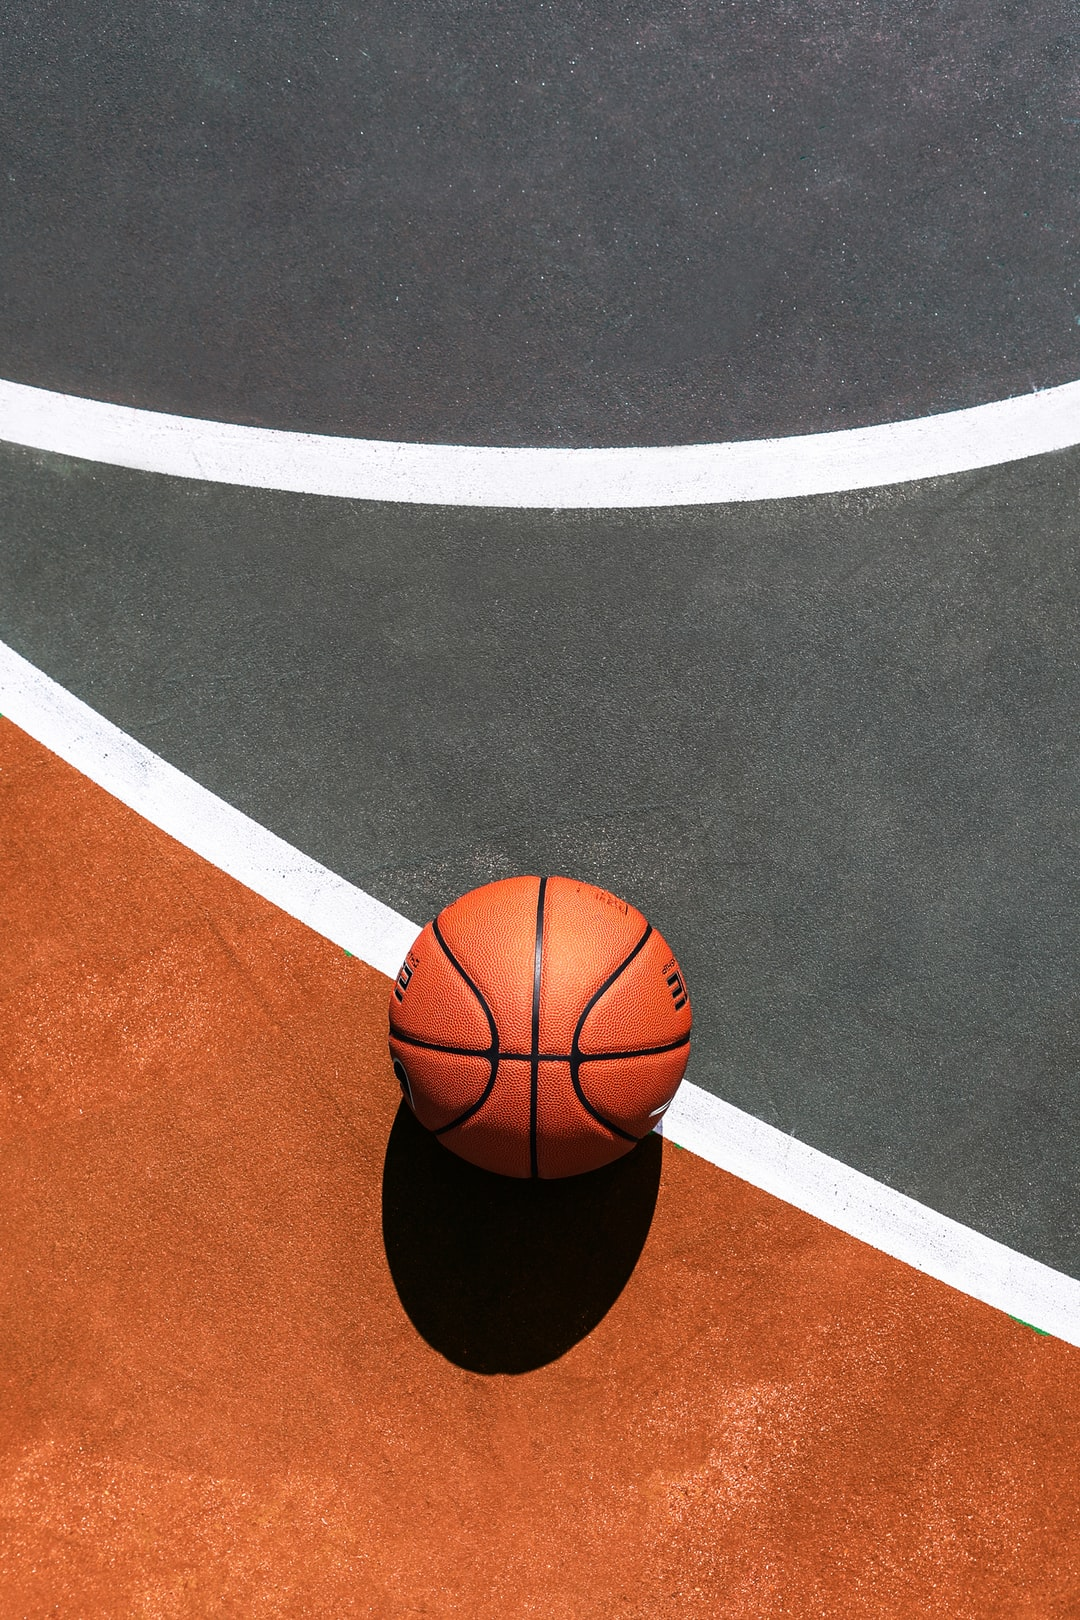 Swim tennis basketball games clipart clip art free download Best 100+ Sports Pictures | Download Free Images on Unsplash clip art free download